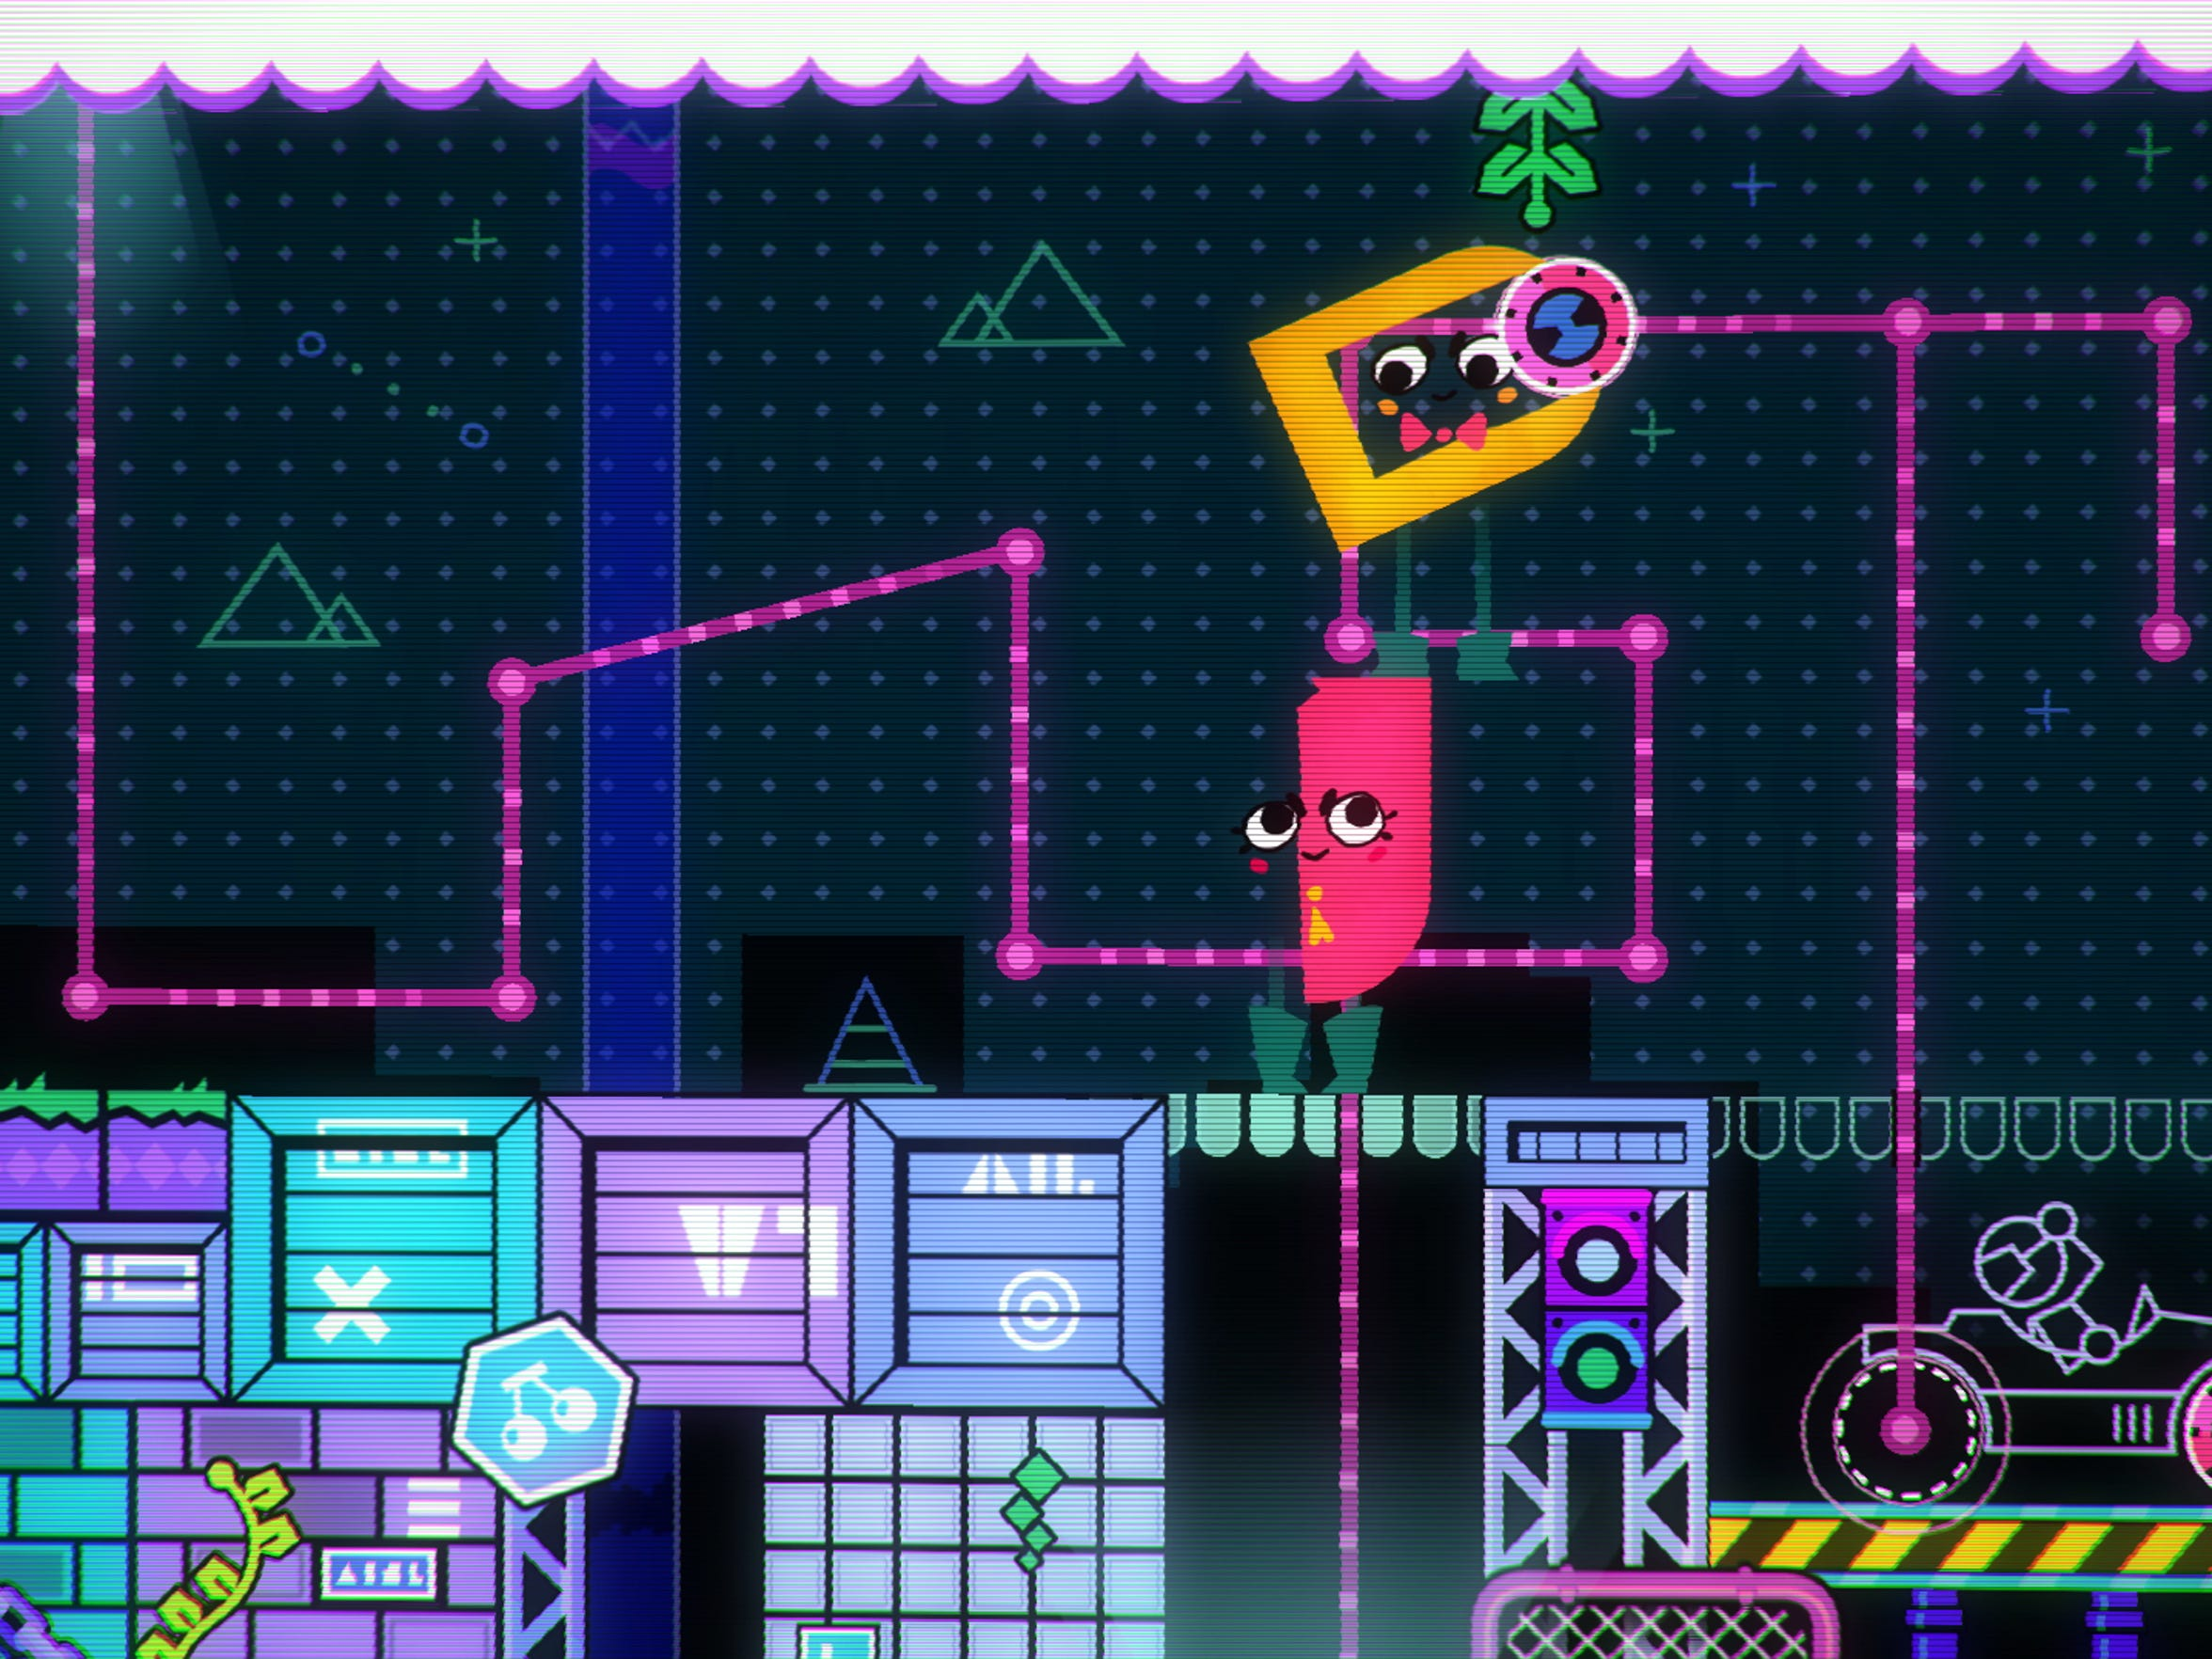 Charming characters takes Snipperclips' puzzles to